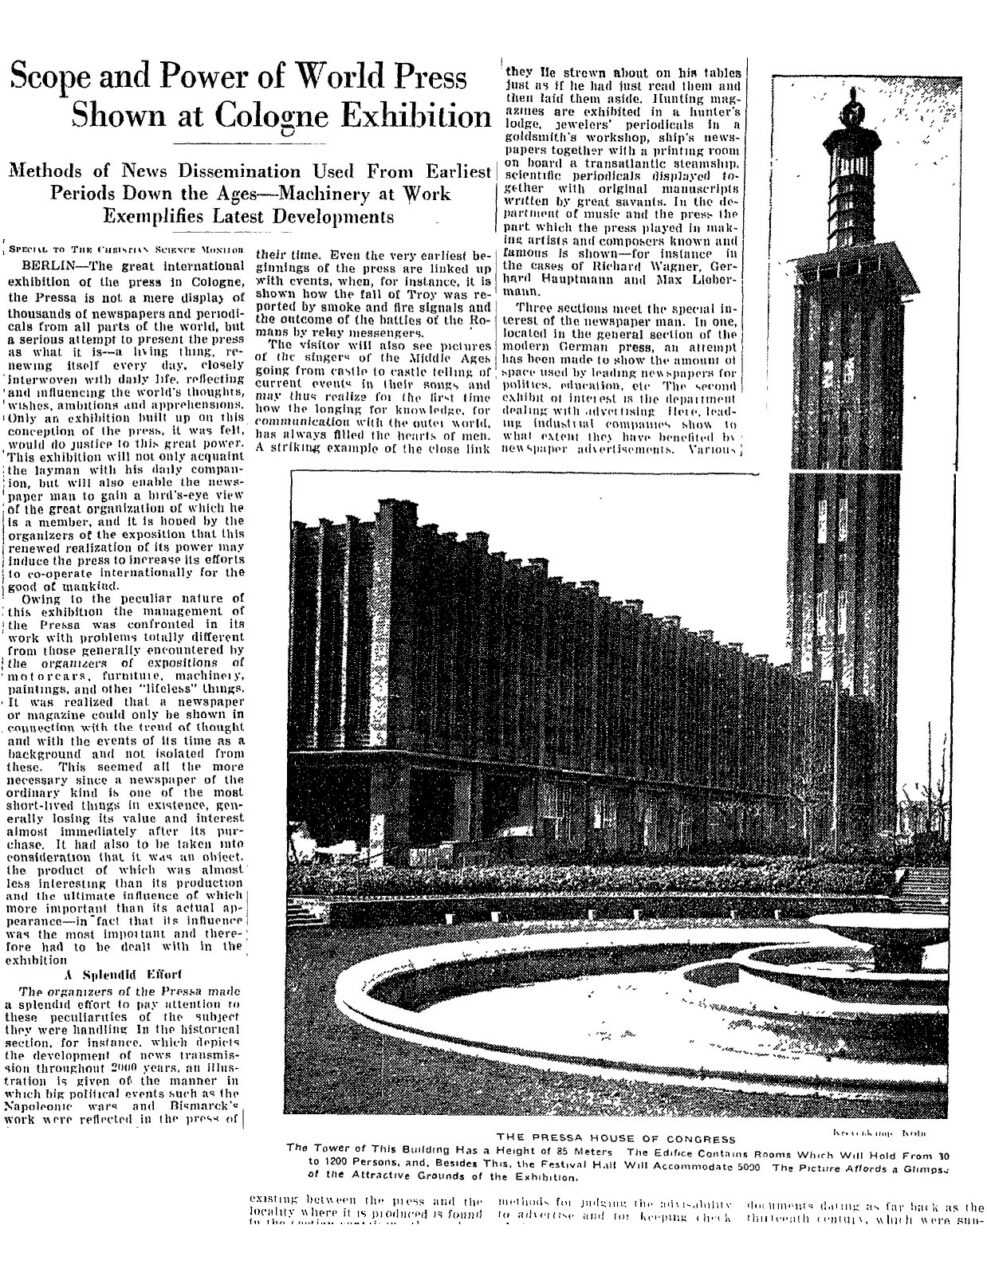 Christian Science Monitor 1928